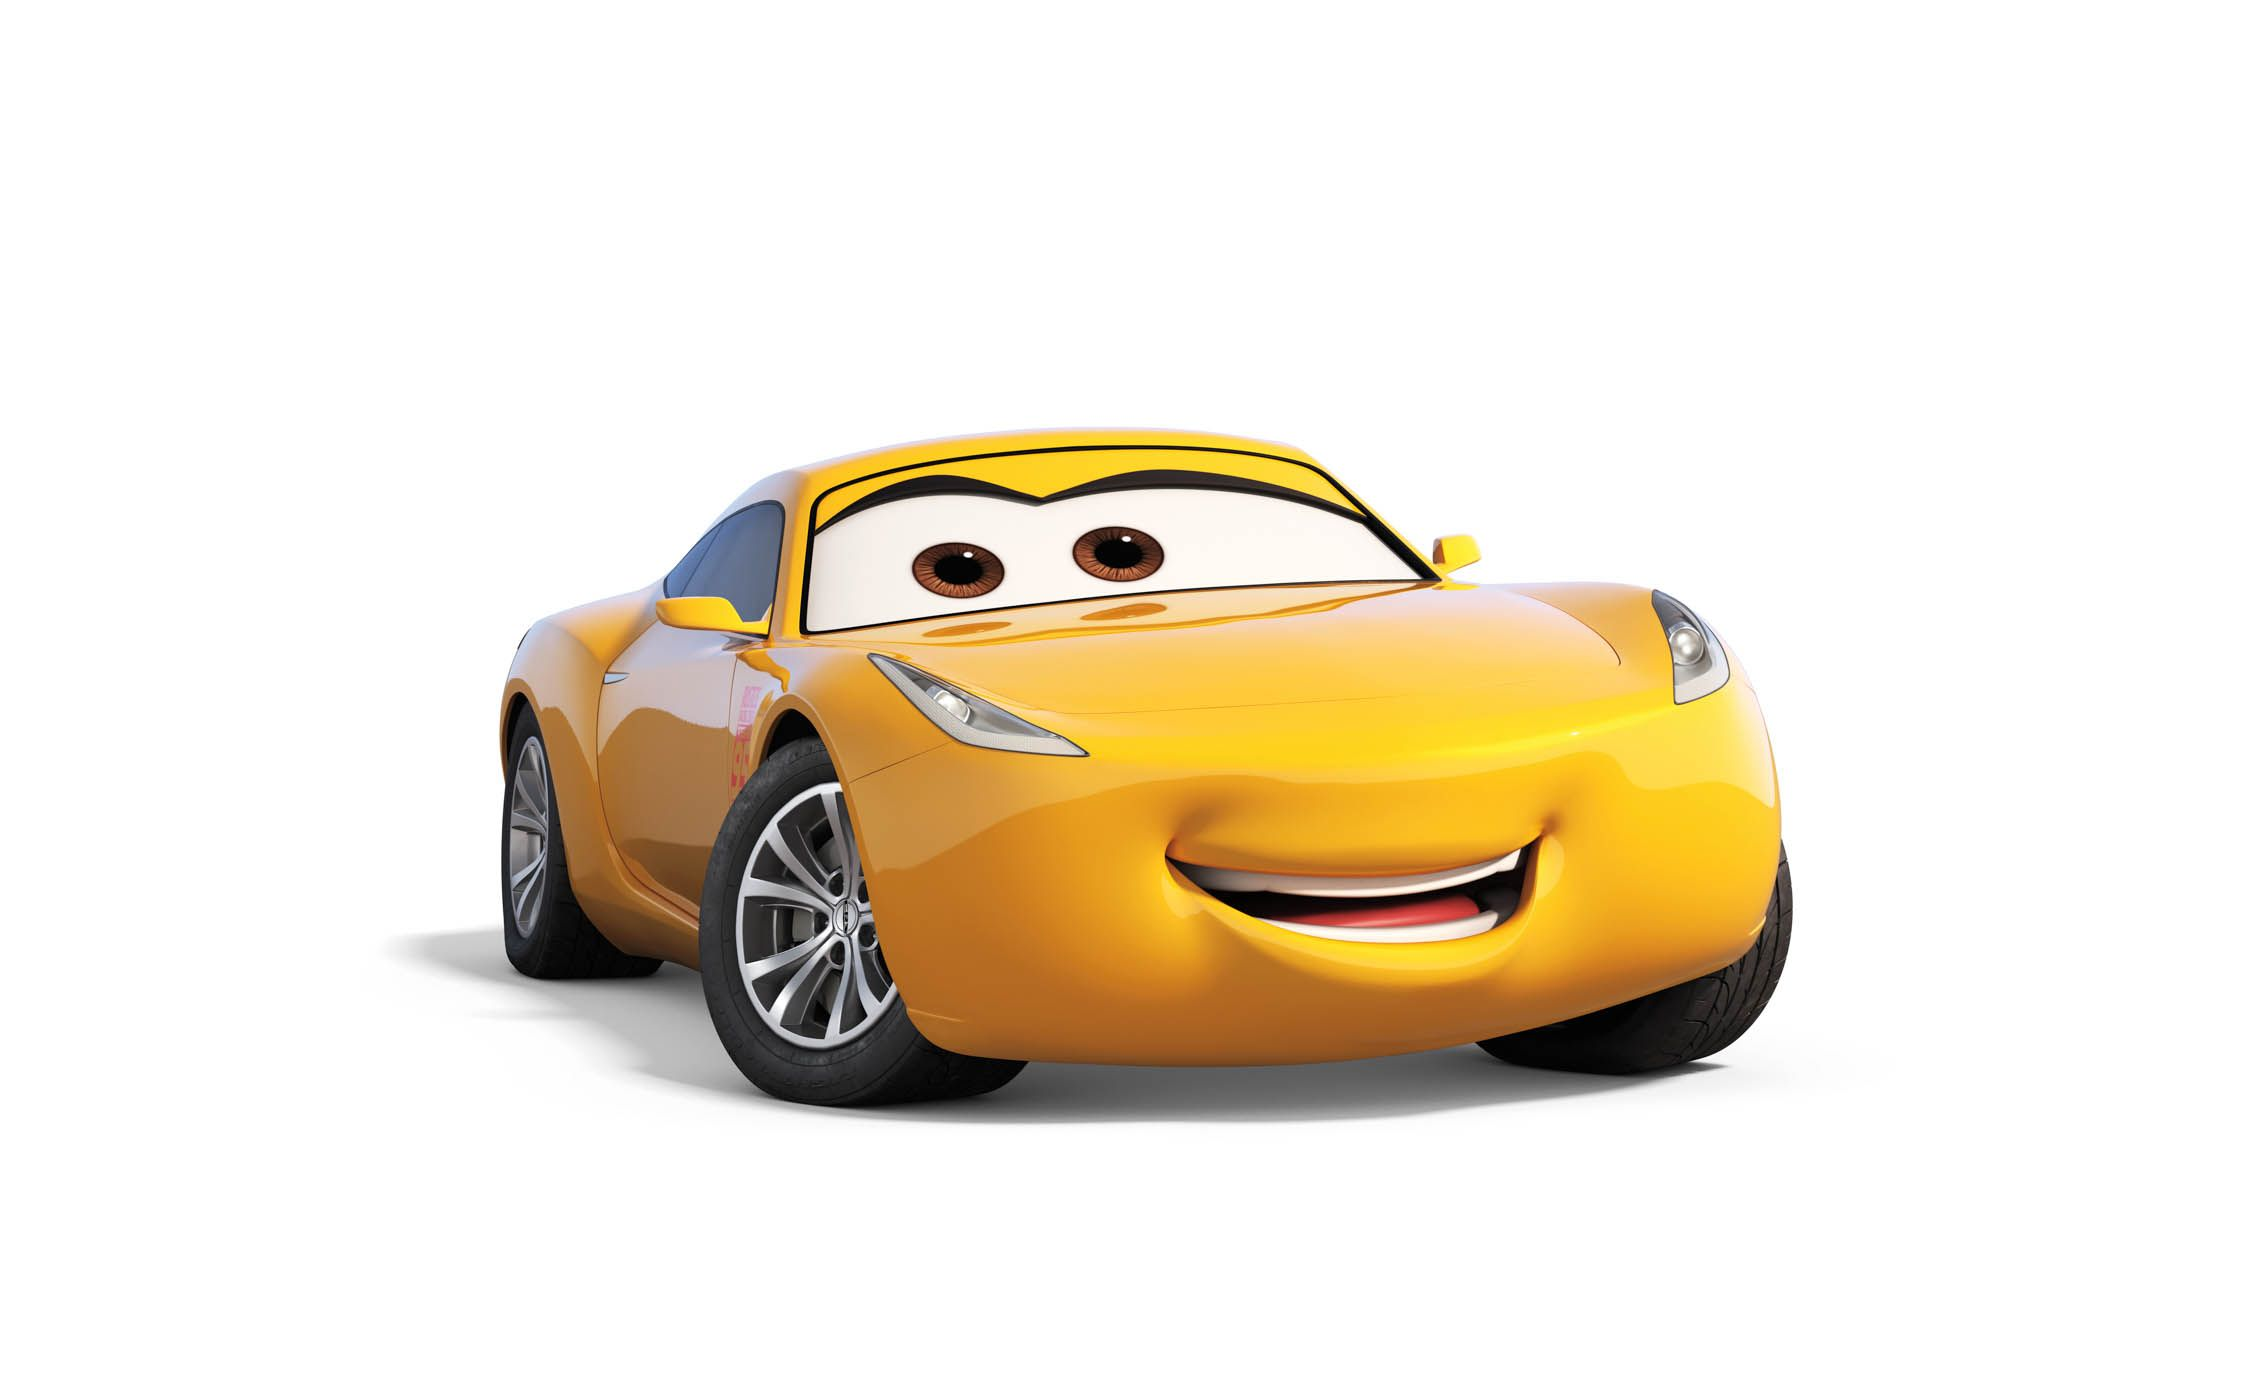 meet all of cars 3 characters - cars 3 cast and character names